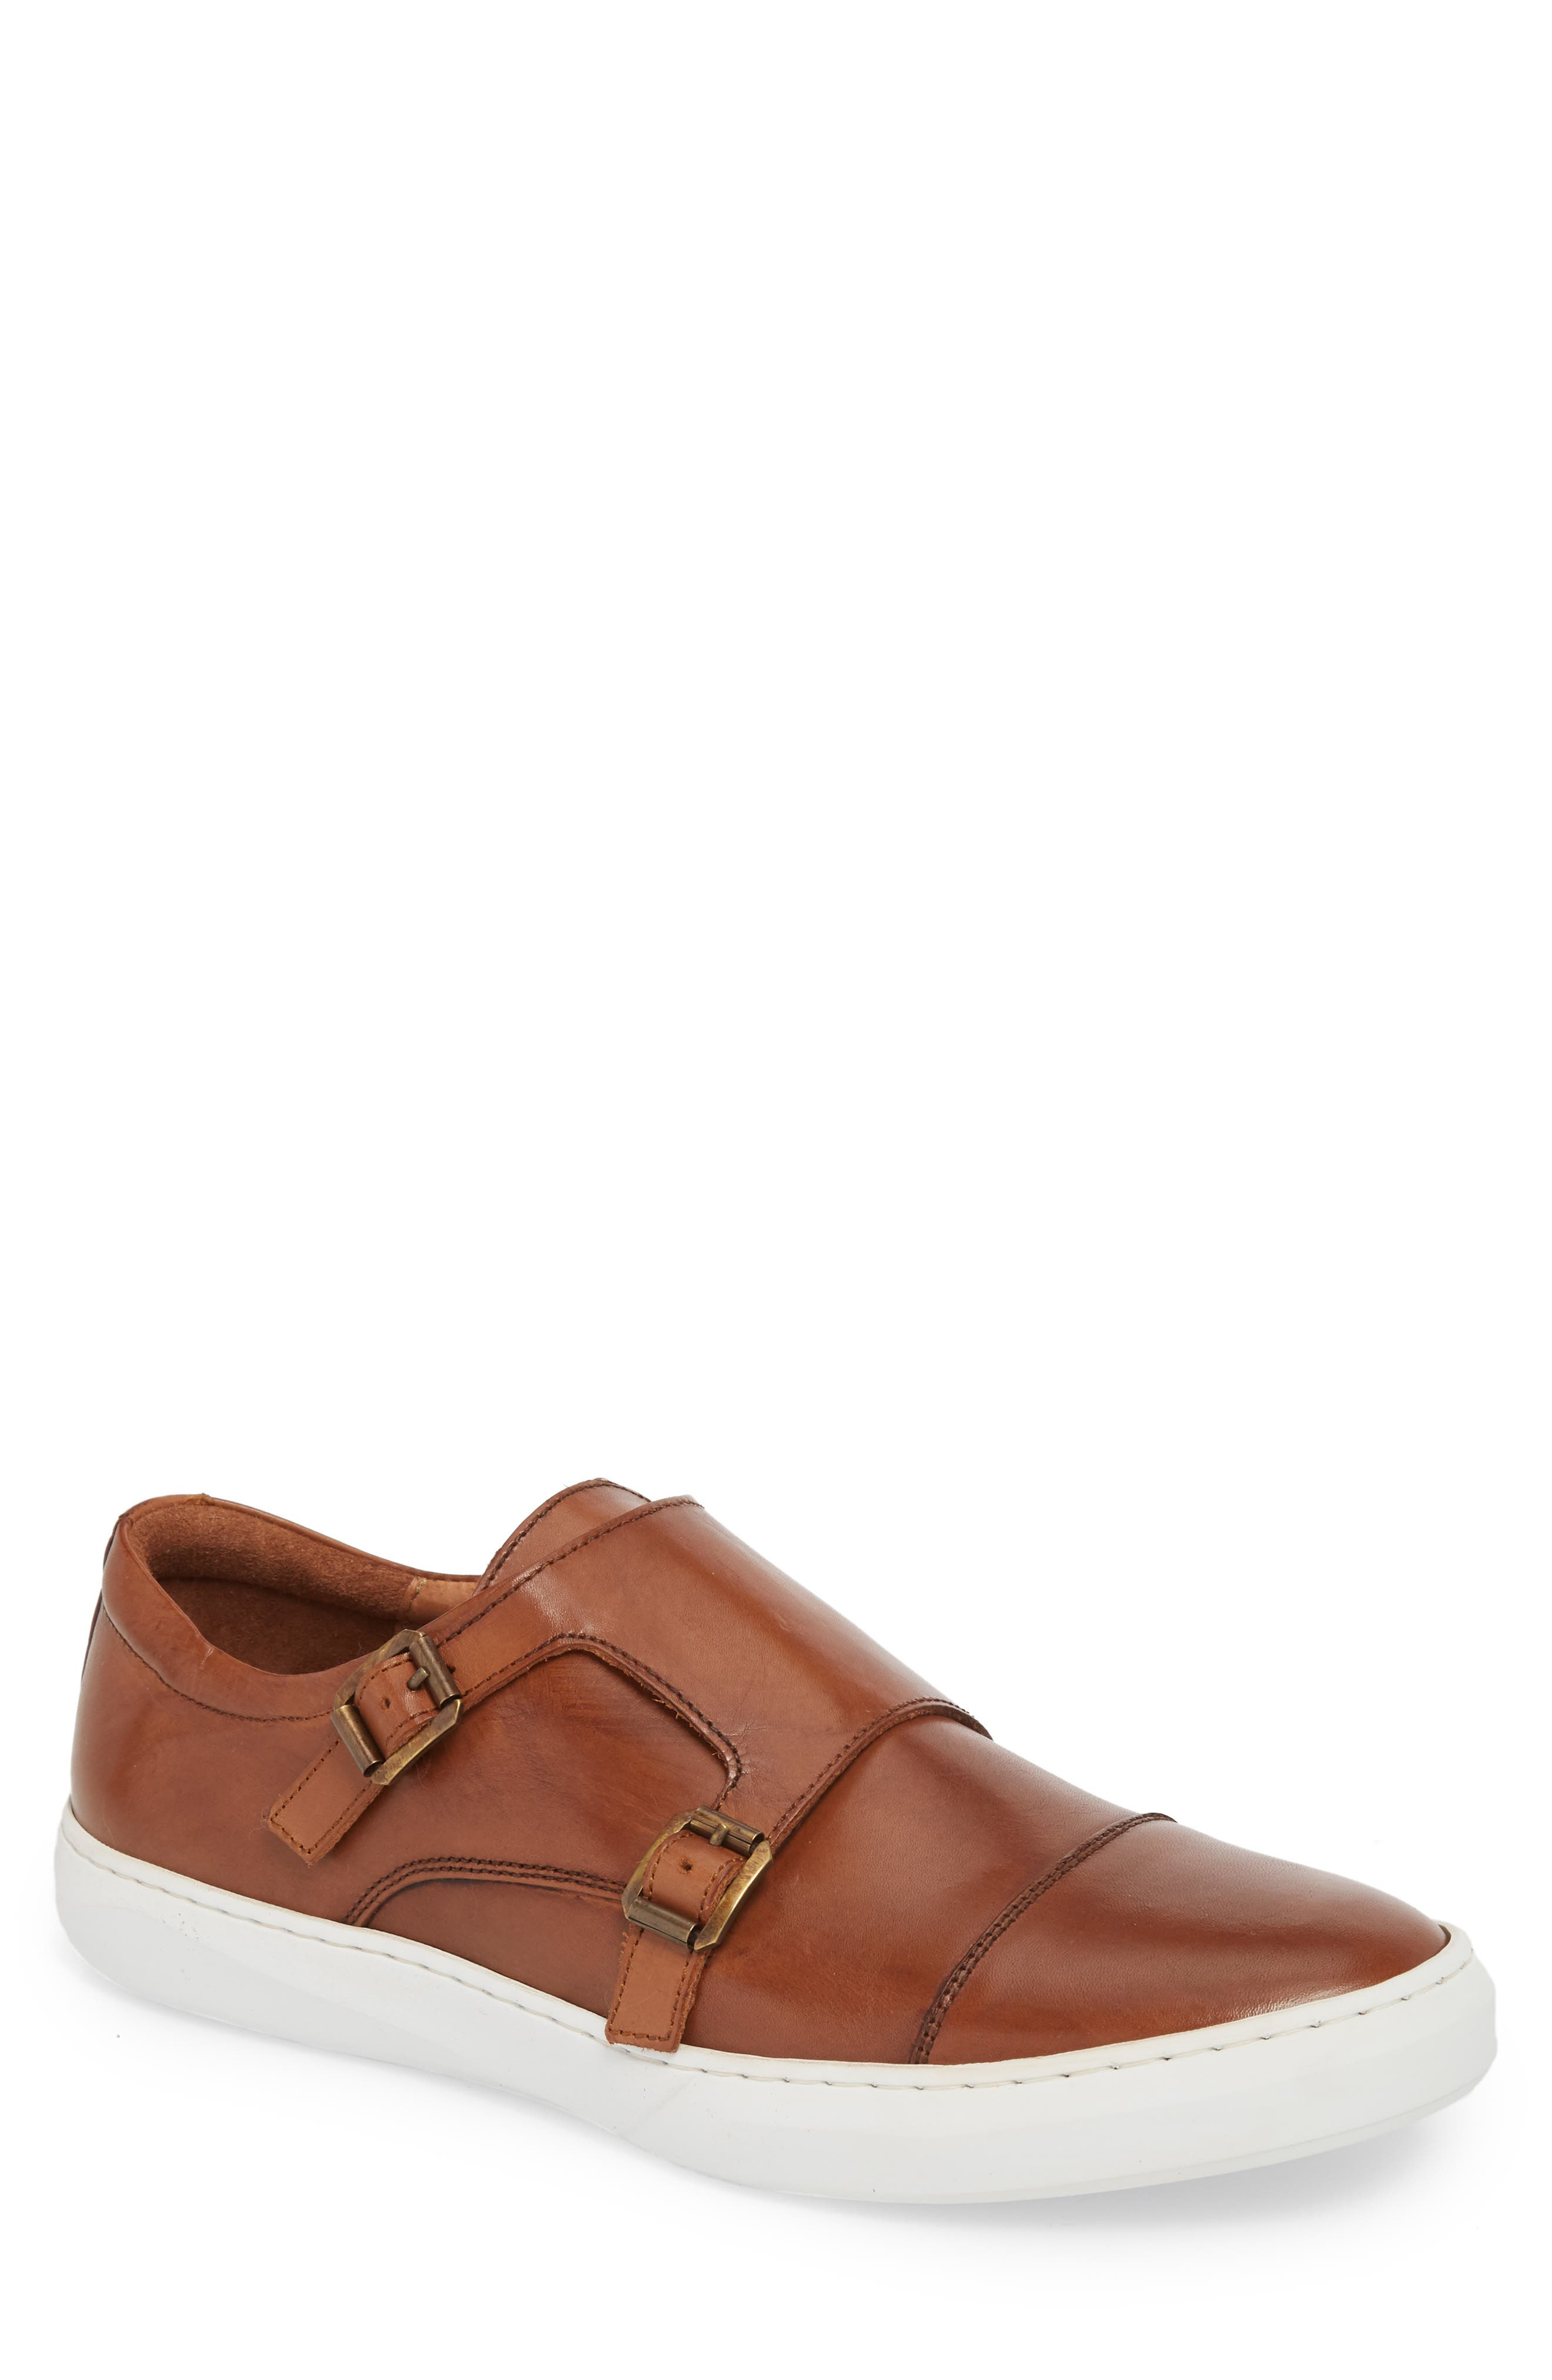 KENNETH COLE NEW YORK,                             Whyle Double Strap Monk Sneaker,                             Main thumbnail 1, color,                             COGNAC LEATHER